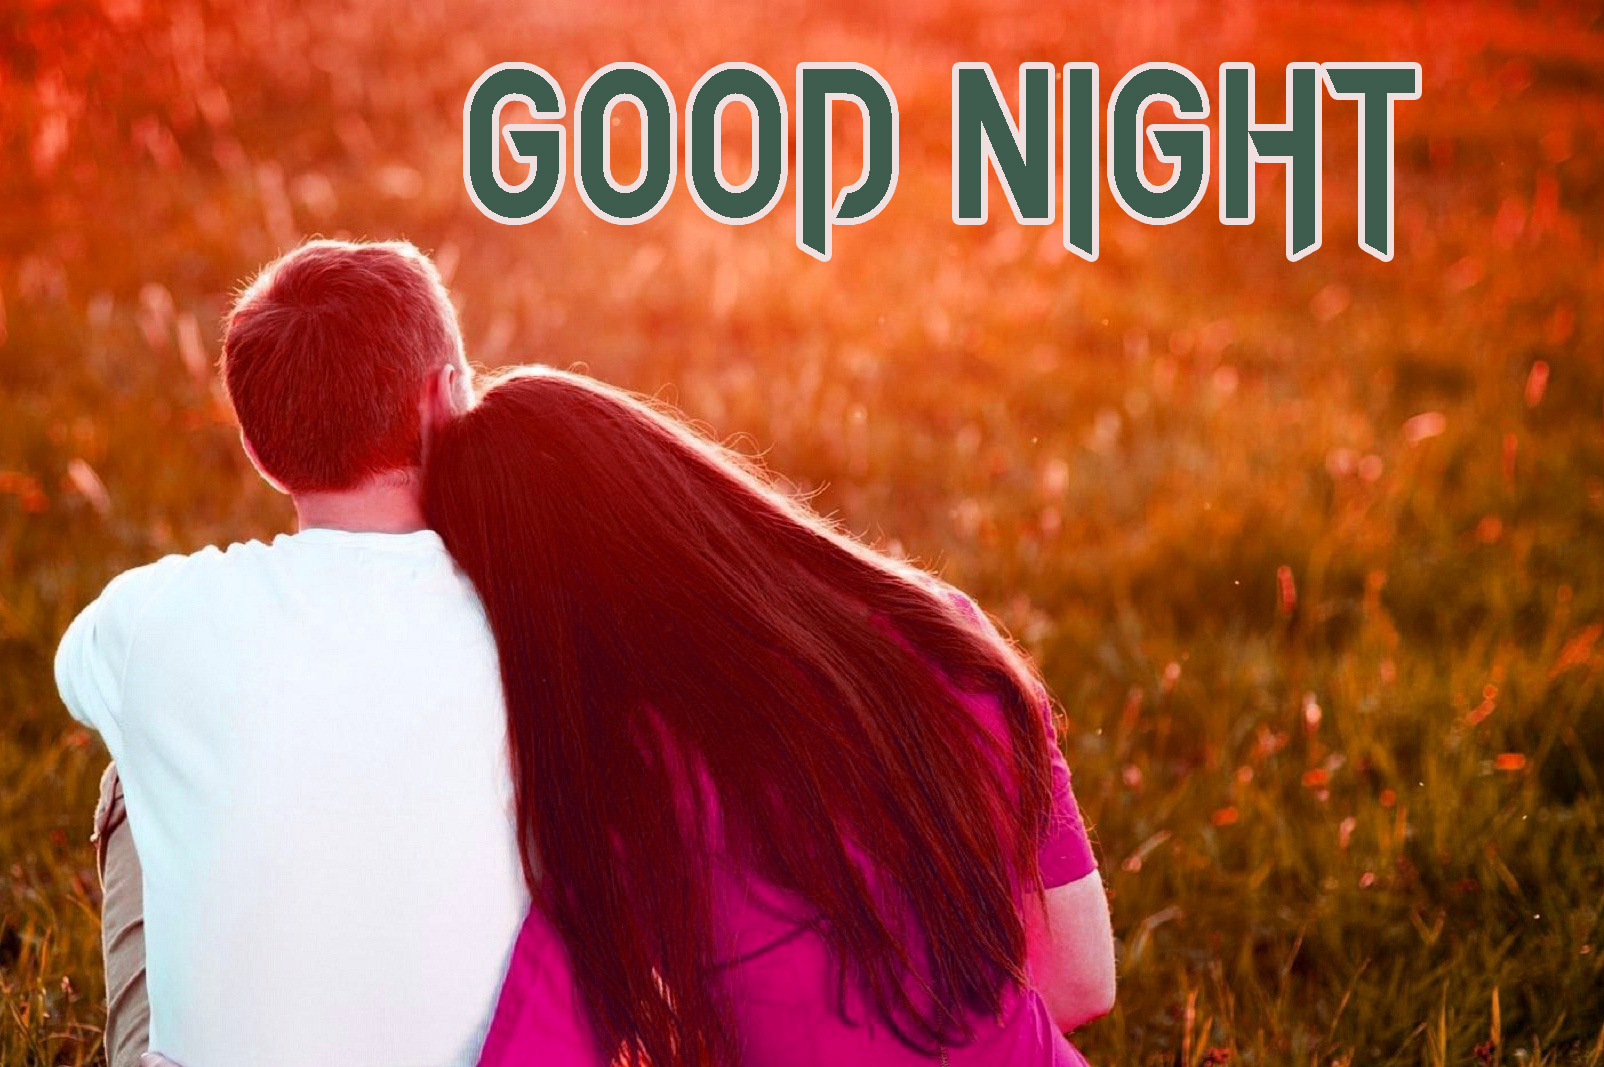 GOOD NIGHT IMAGES FOR LOVER / LOVE COUPLE  IMAGES PHOTO PICS DOWNLOAD